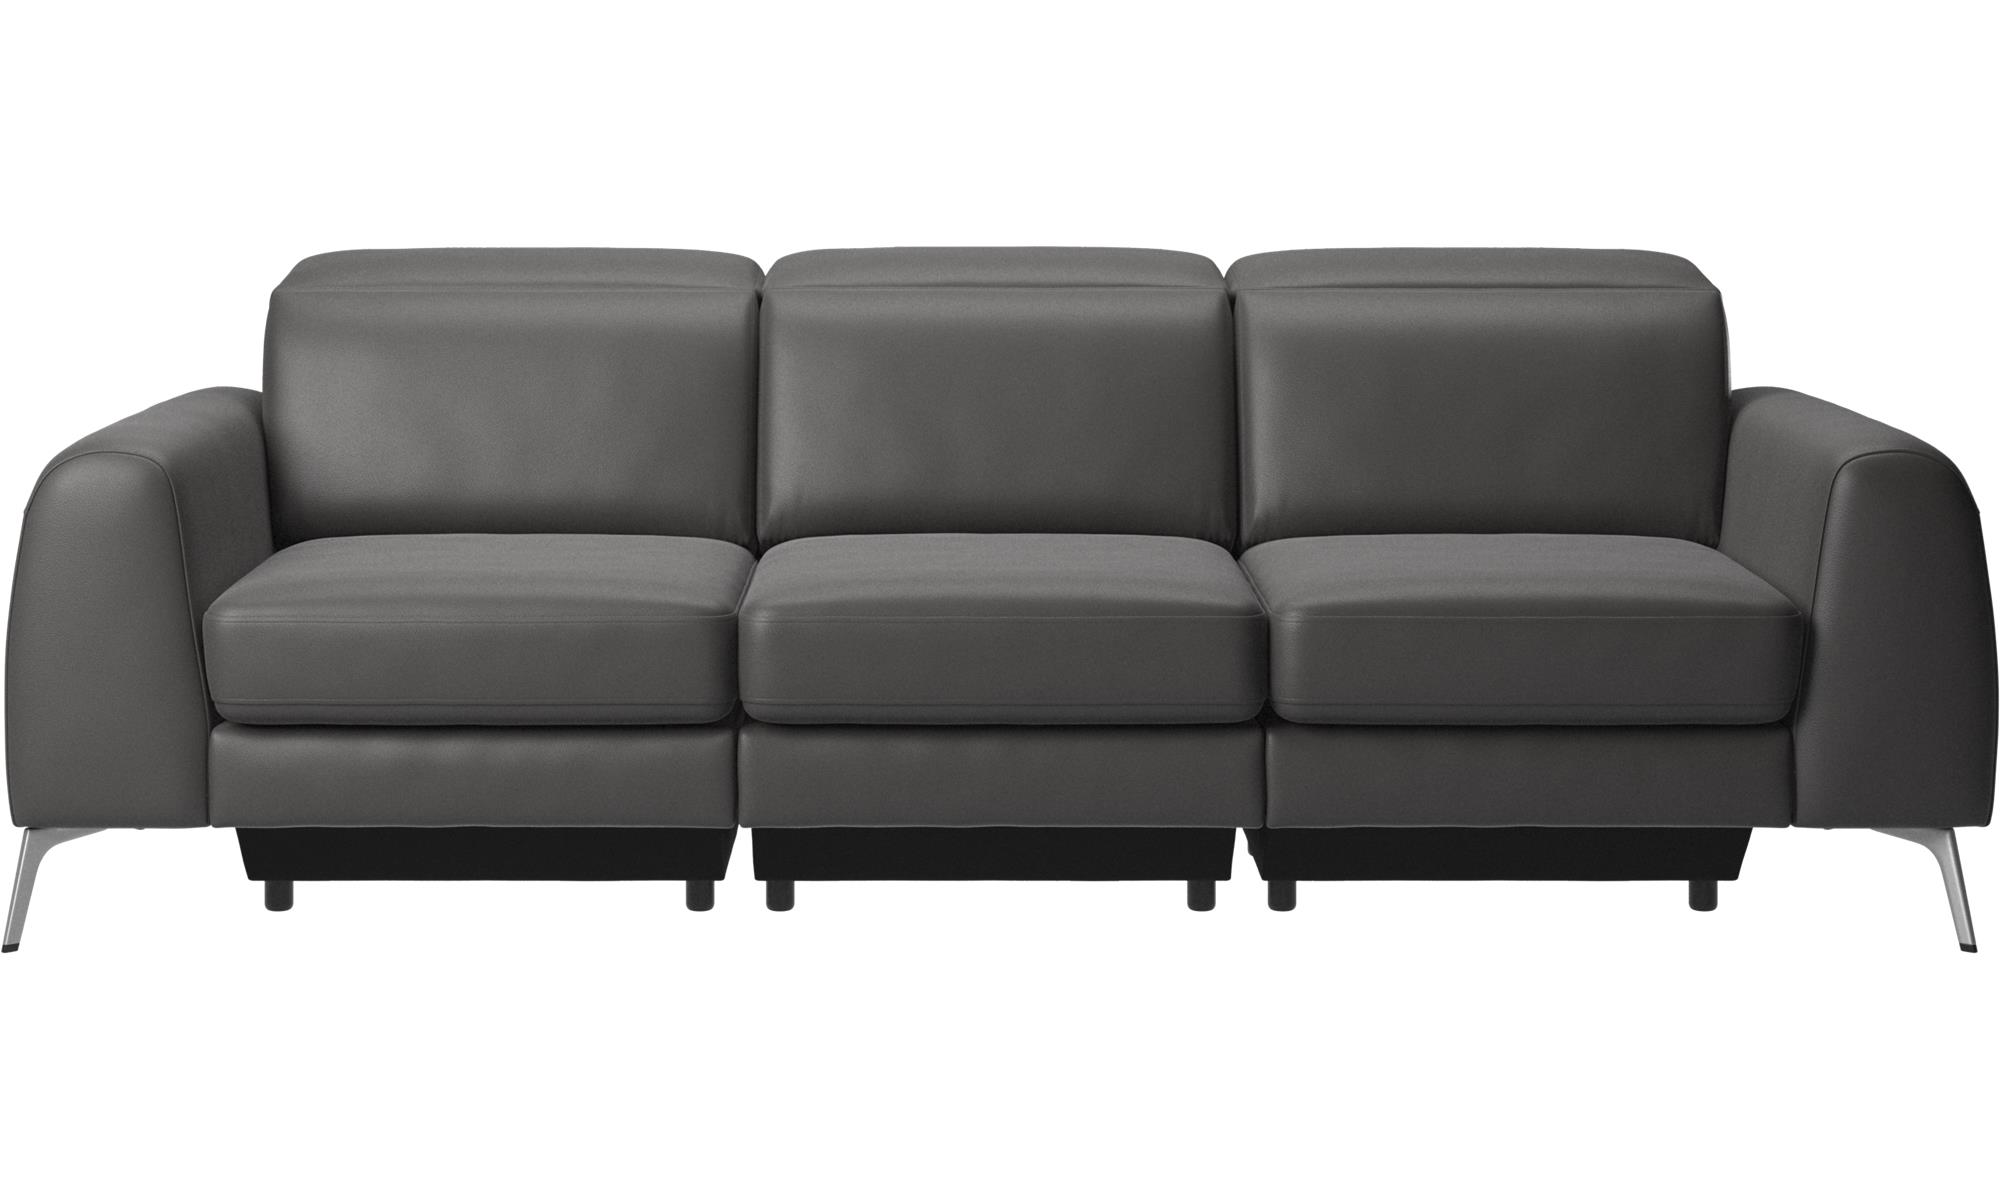 3 sitzer sofas madison sofa mit verstellbarer kopfst tze boconcept. Black Bedroom Furniture Sets. Home Design Ideas